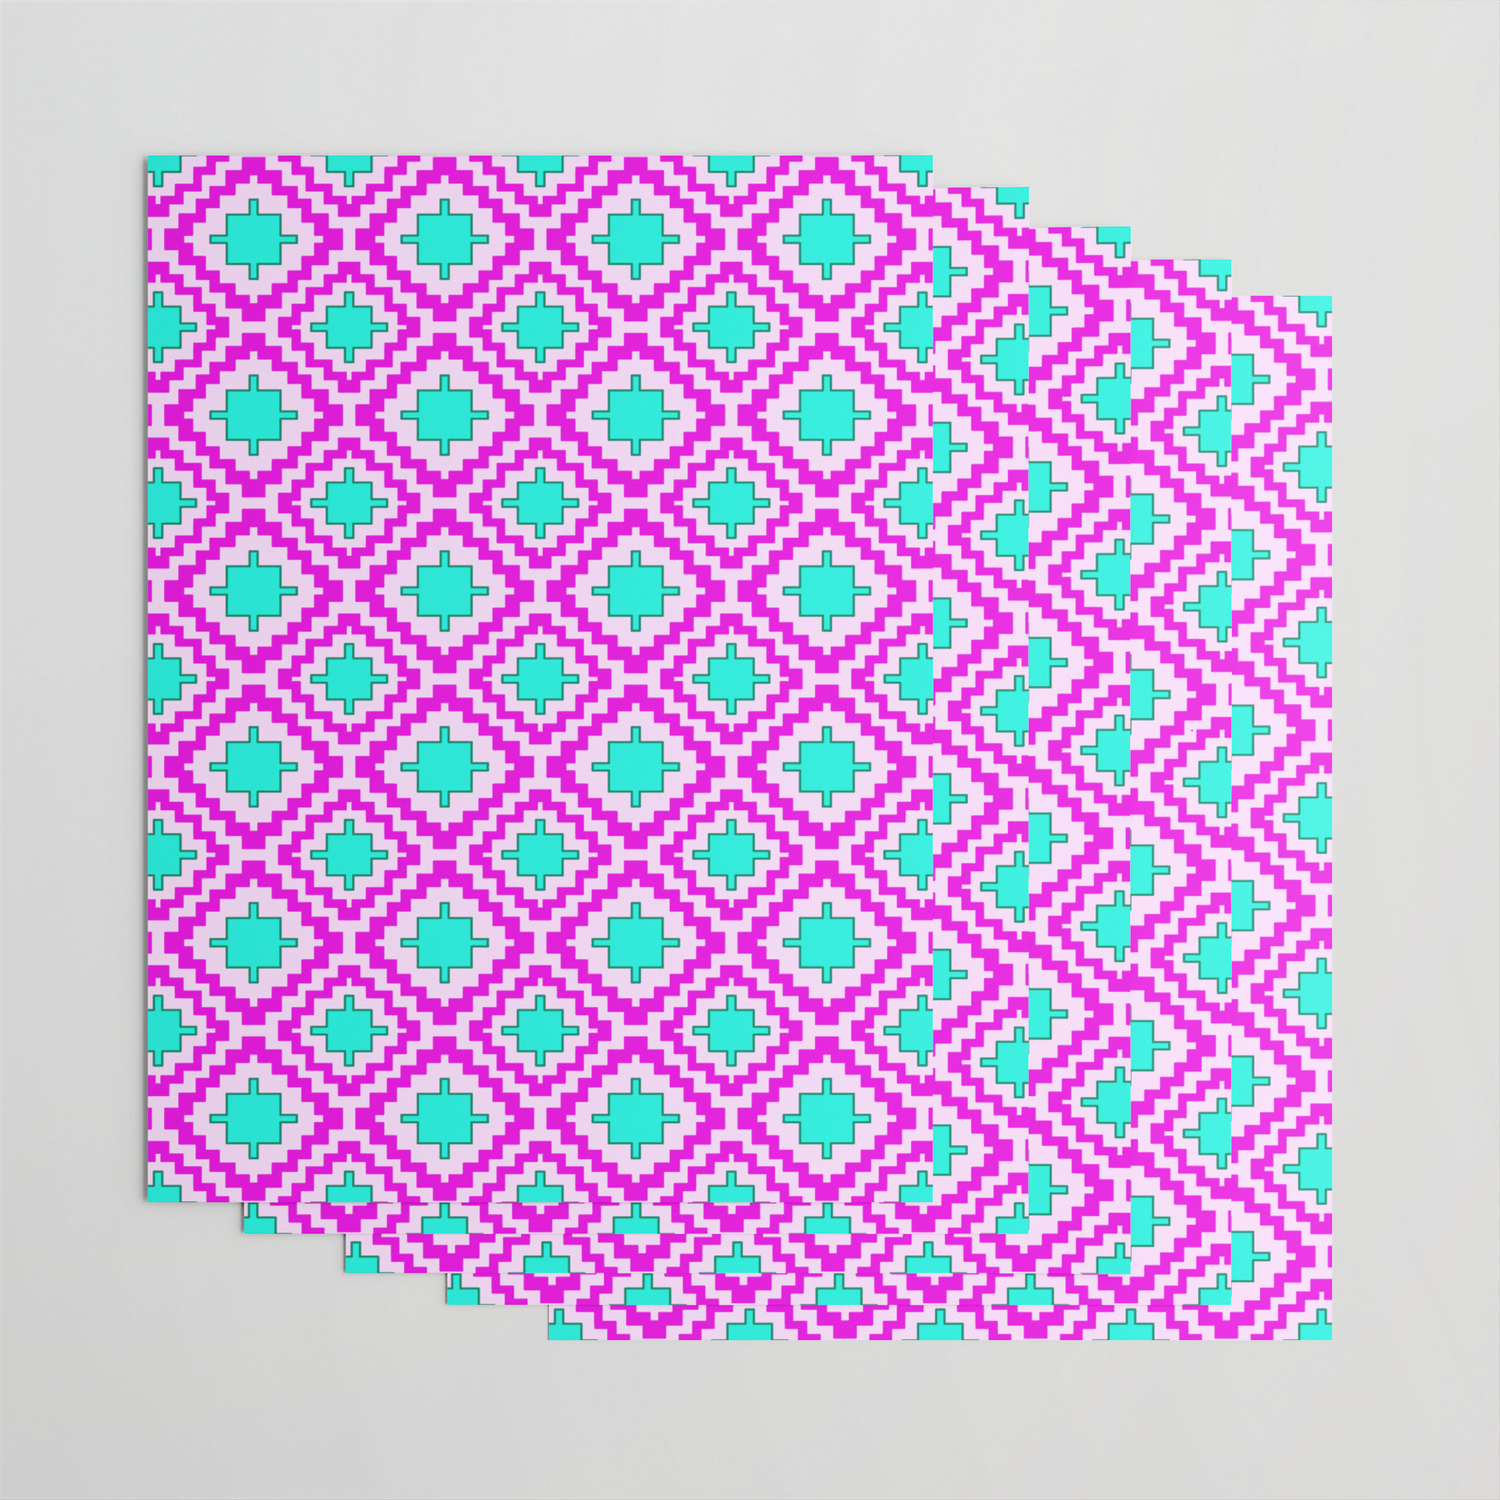 Cowgirl Pink And Turquoise Navajo Native Inspired Oklahoma Arizona Southwestern Design Pattern Wrapping Paperdpartgallery In Southwest Pink Credenzas (View 6 of 30)